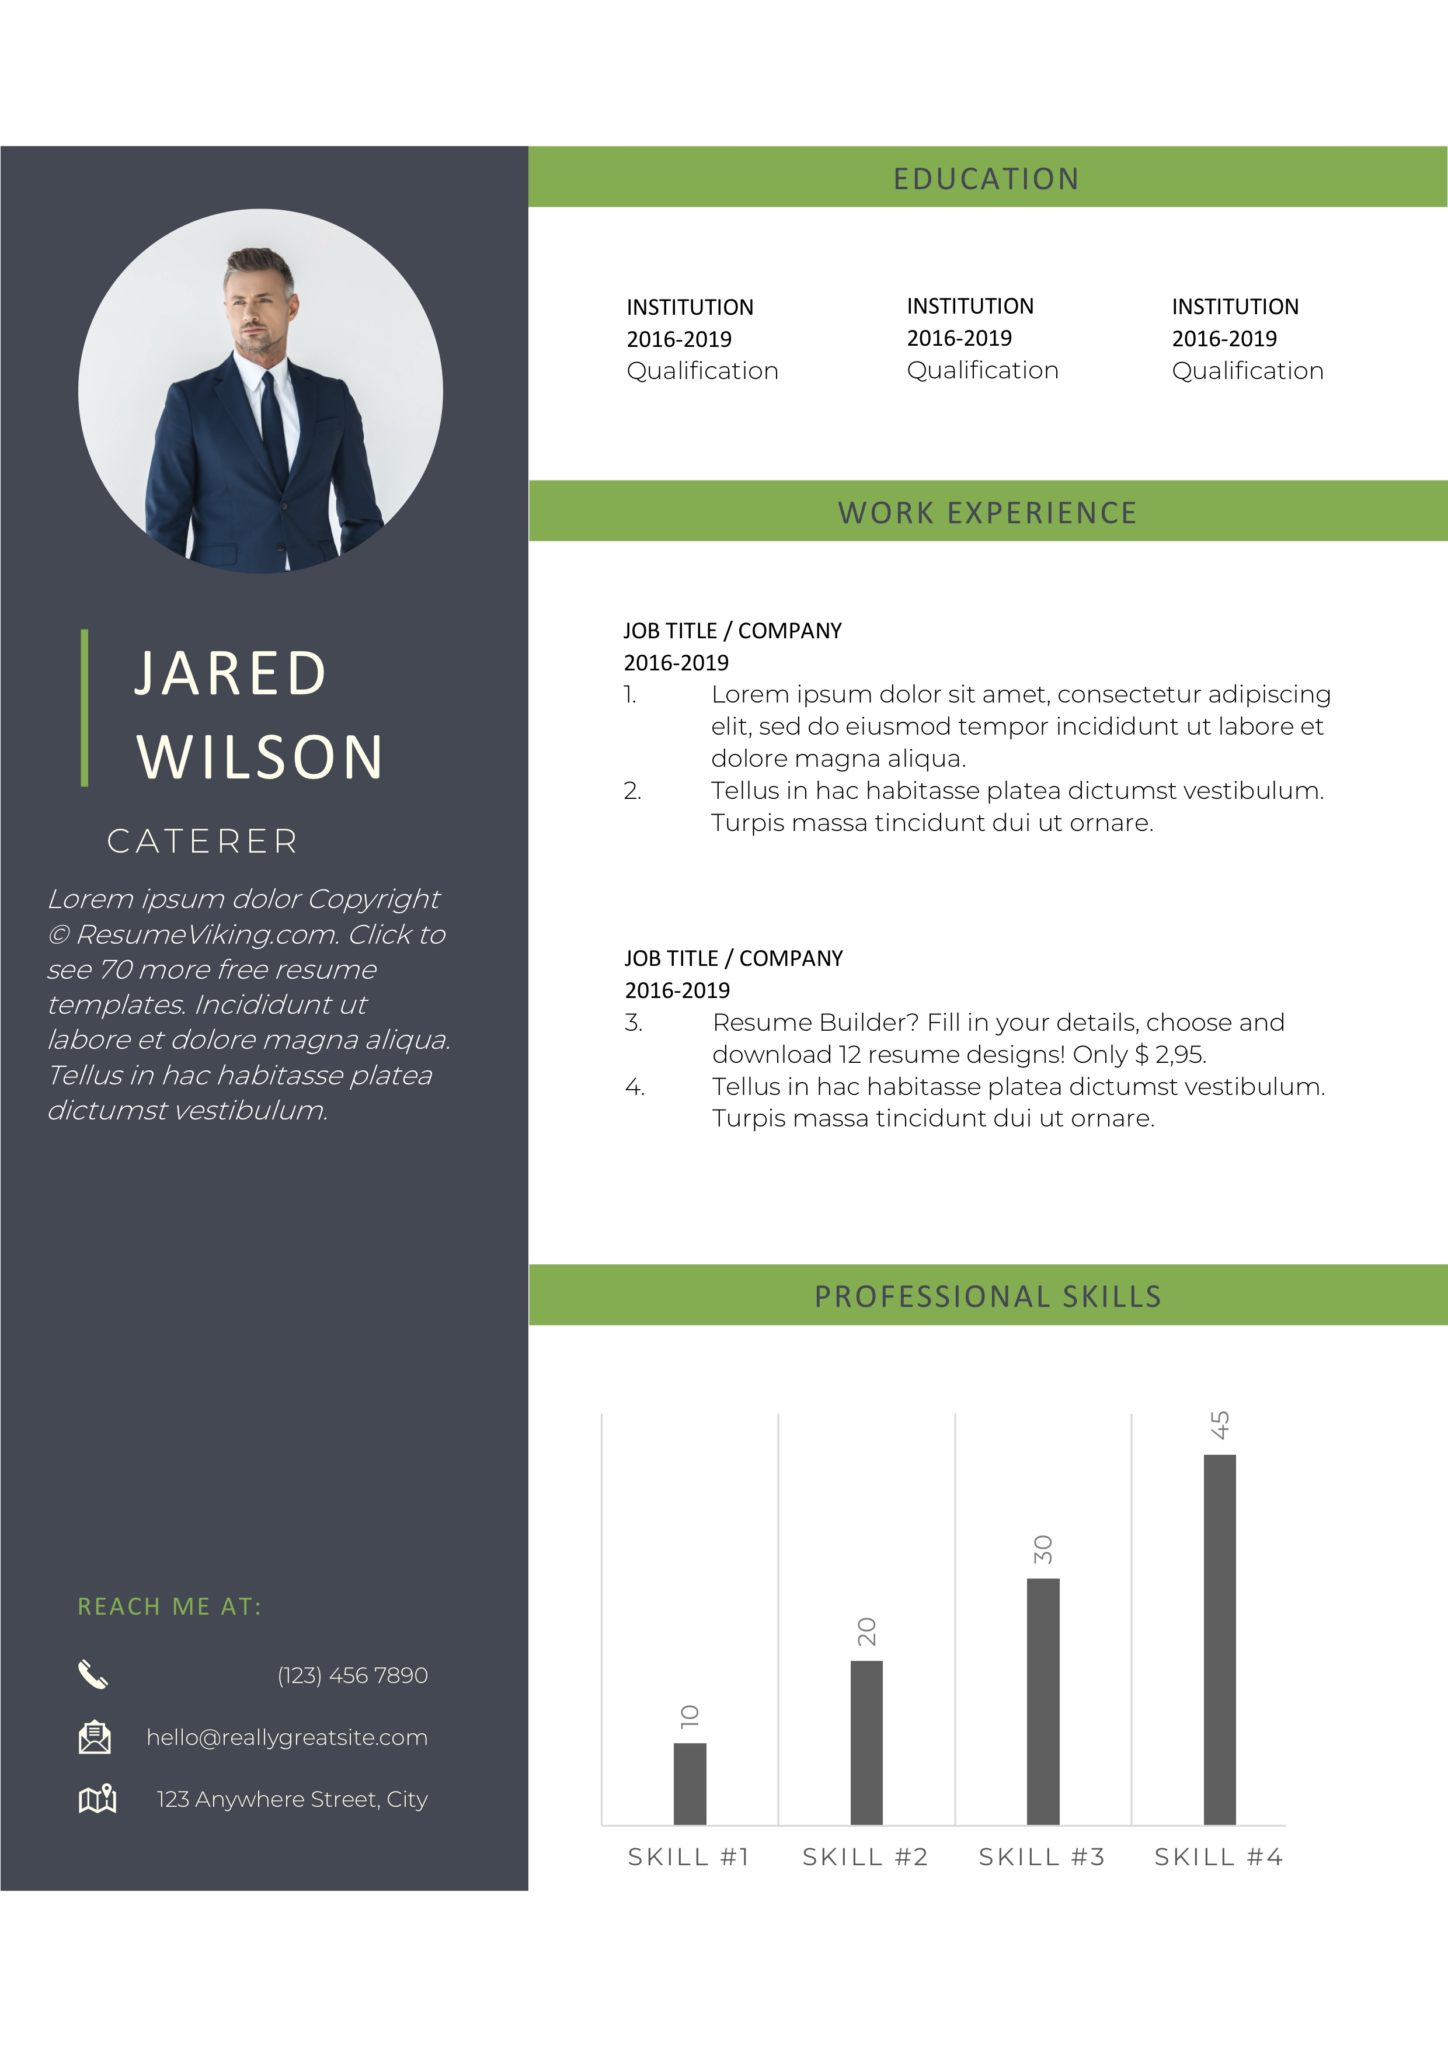 free word resume templates in ms template resumeviking scaled entry level aviation scan Resume Resume Template 2020 Word Free